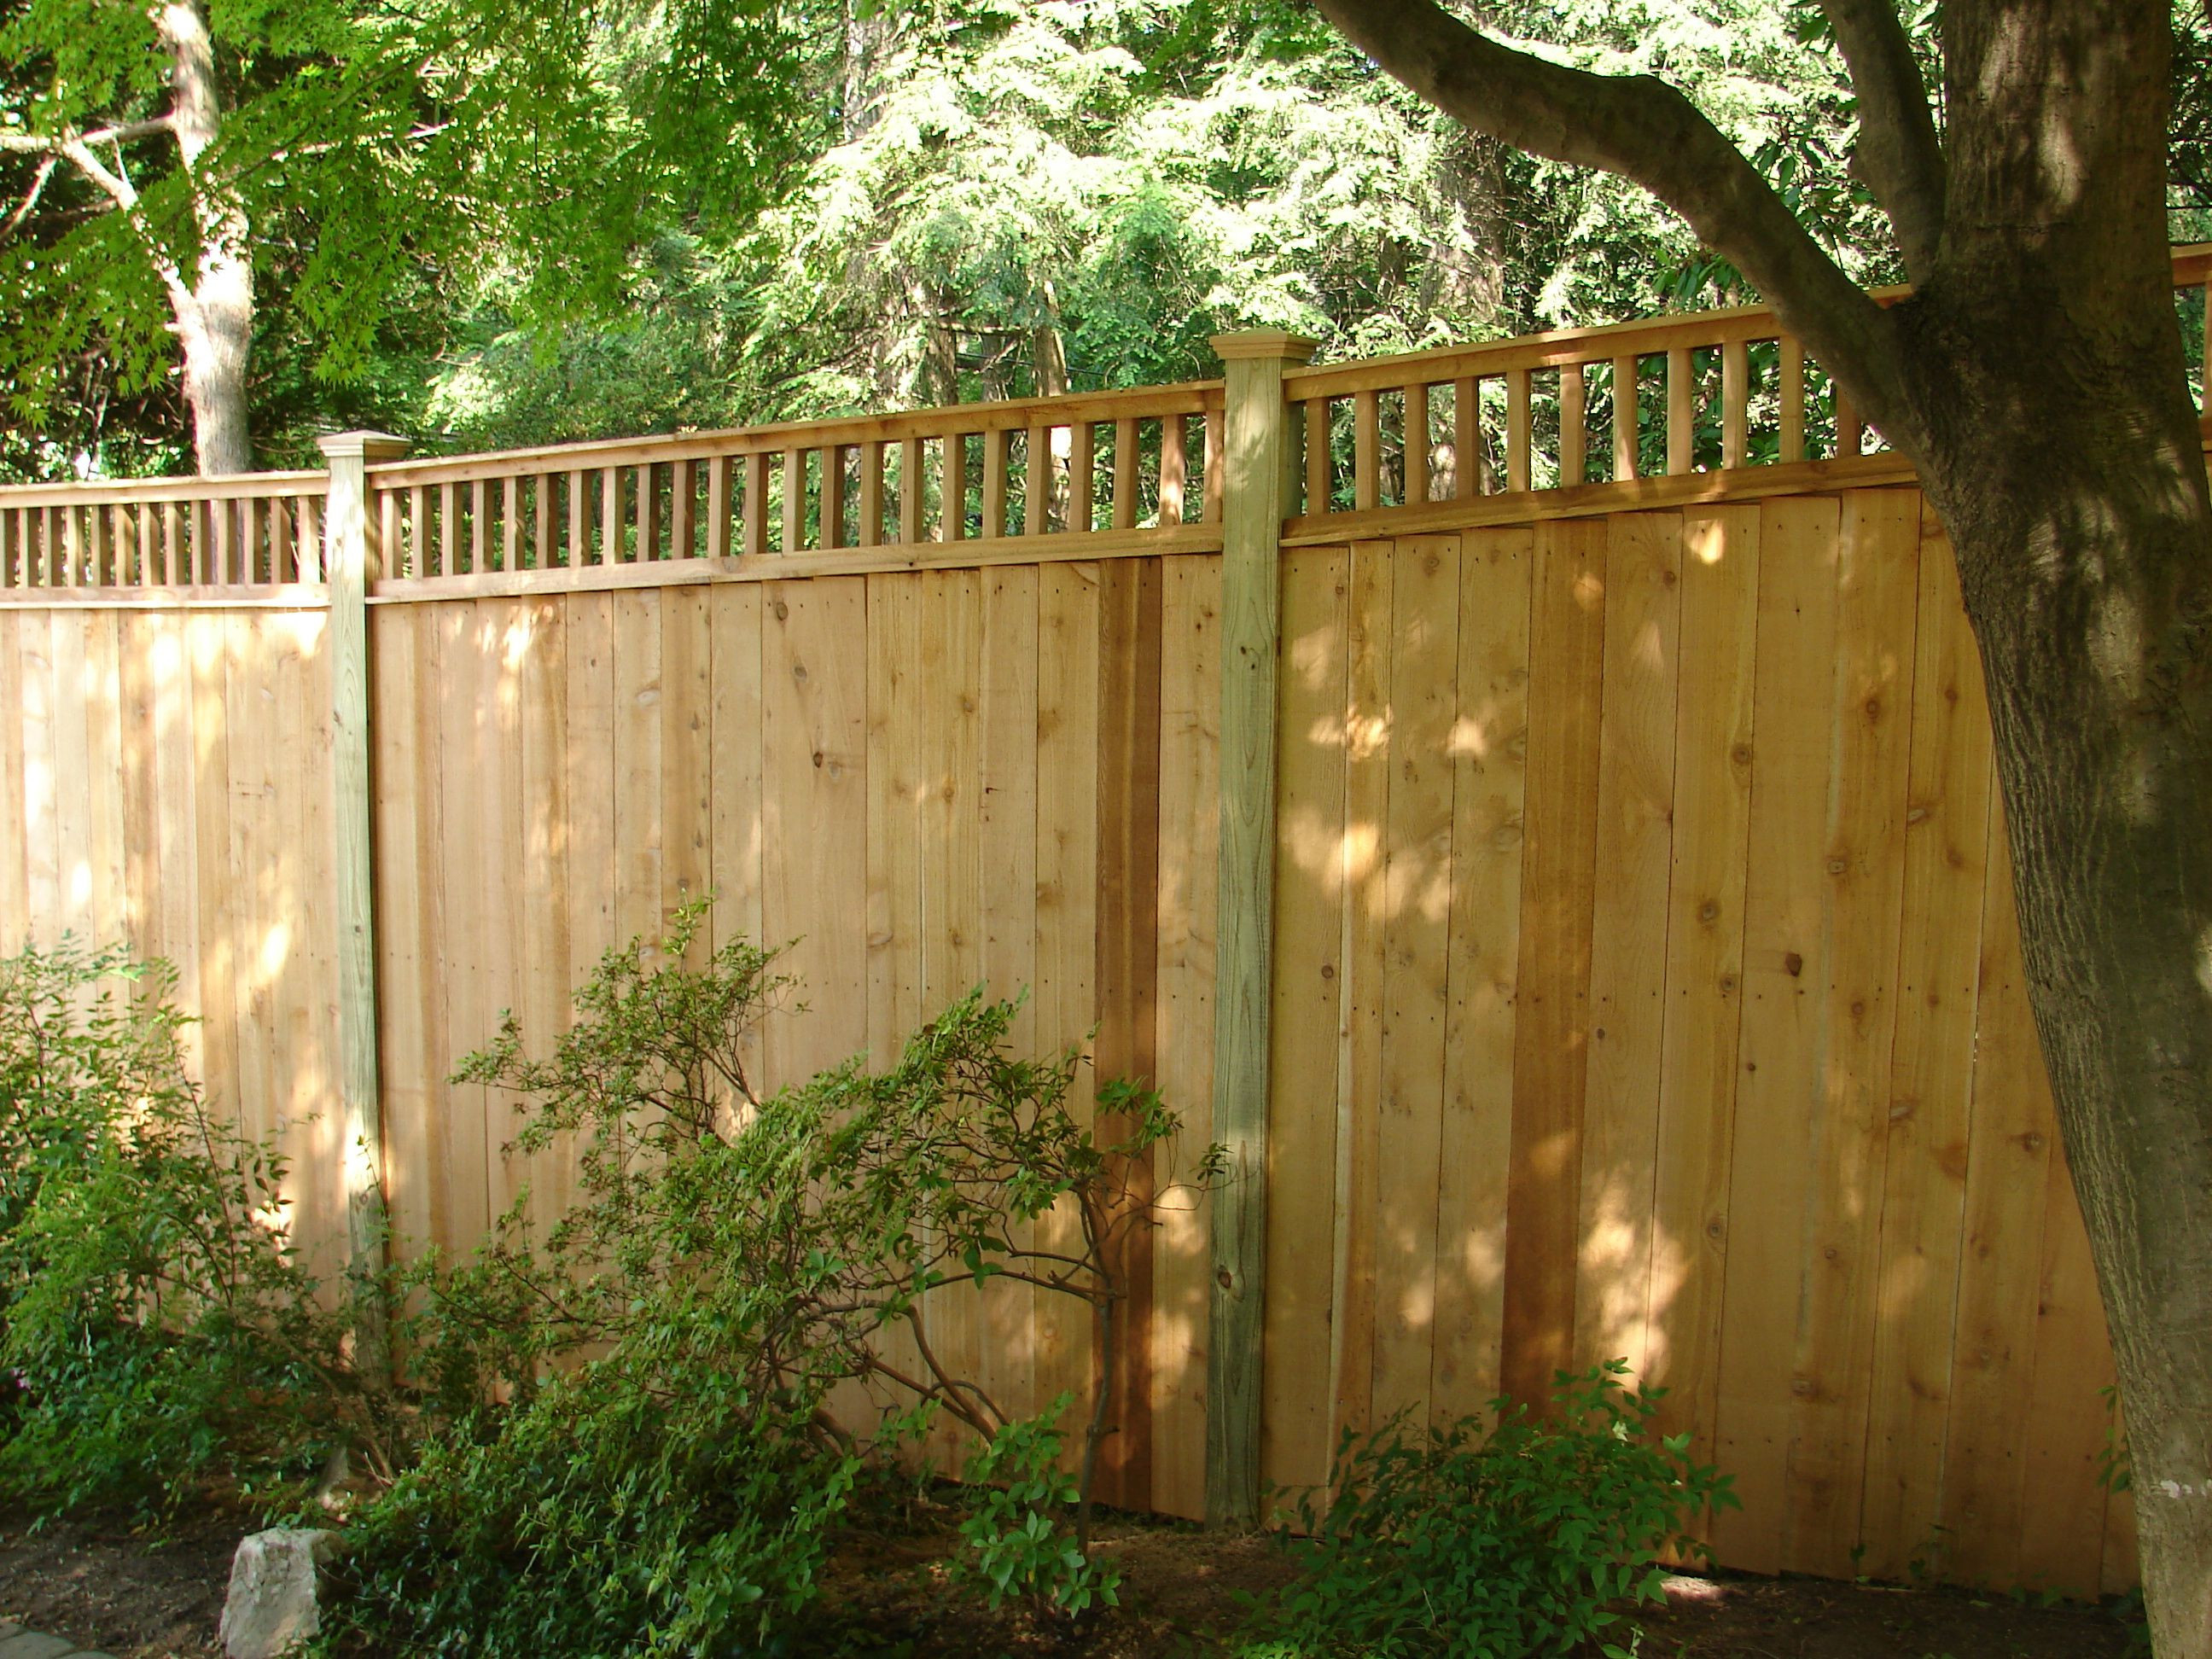 Metal Privacy Fence Cost Inspirational Fence Cost Chain Link Fence pertaining to Backyard Fence Cost Calculator